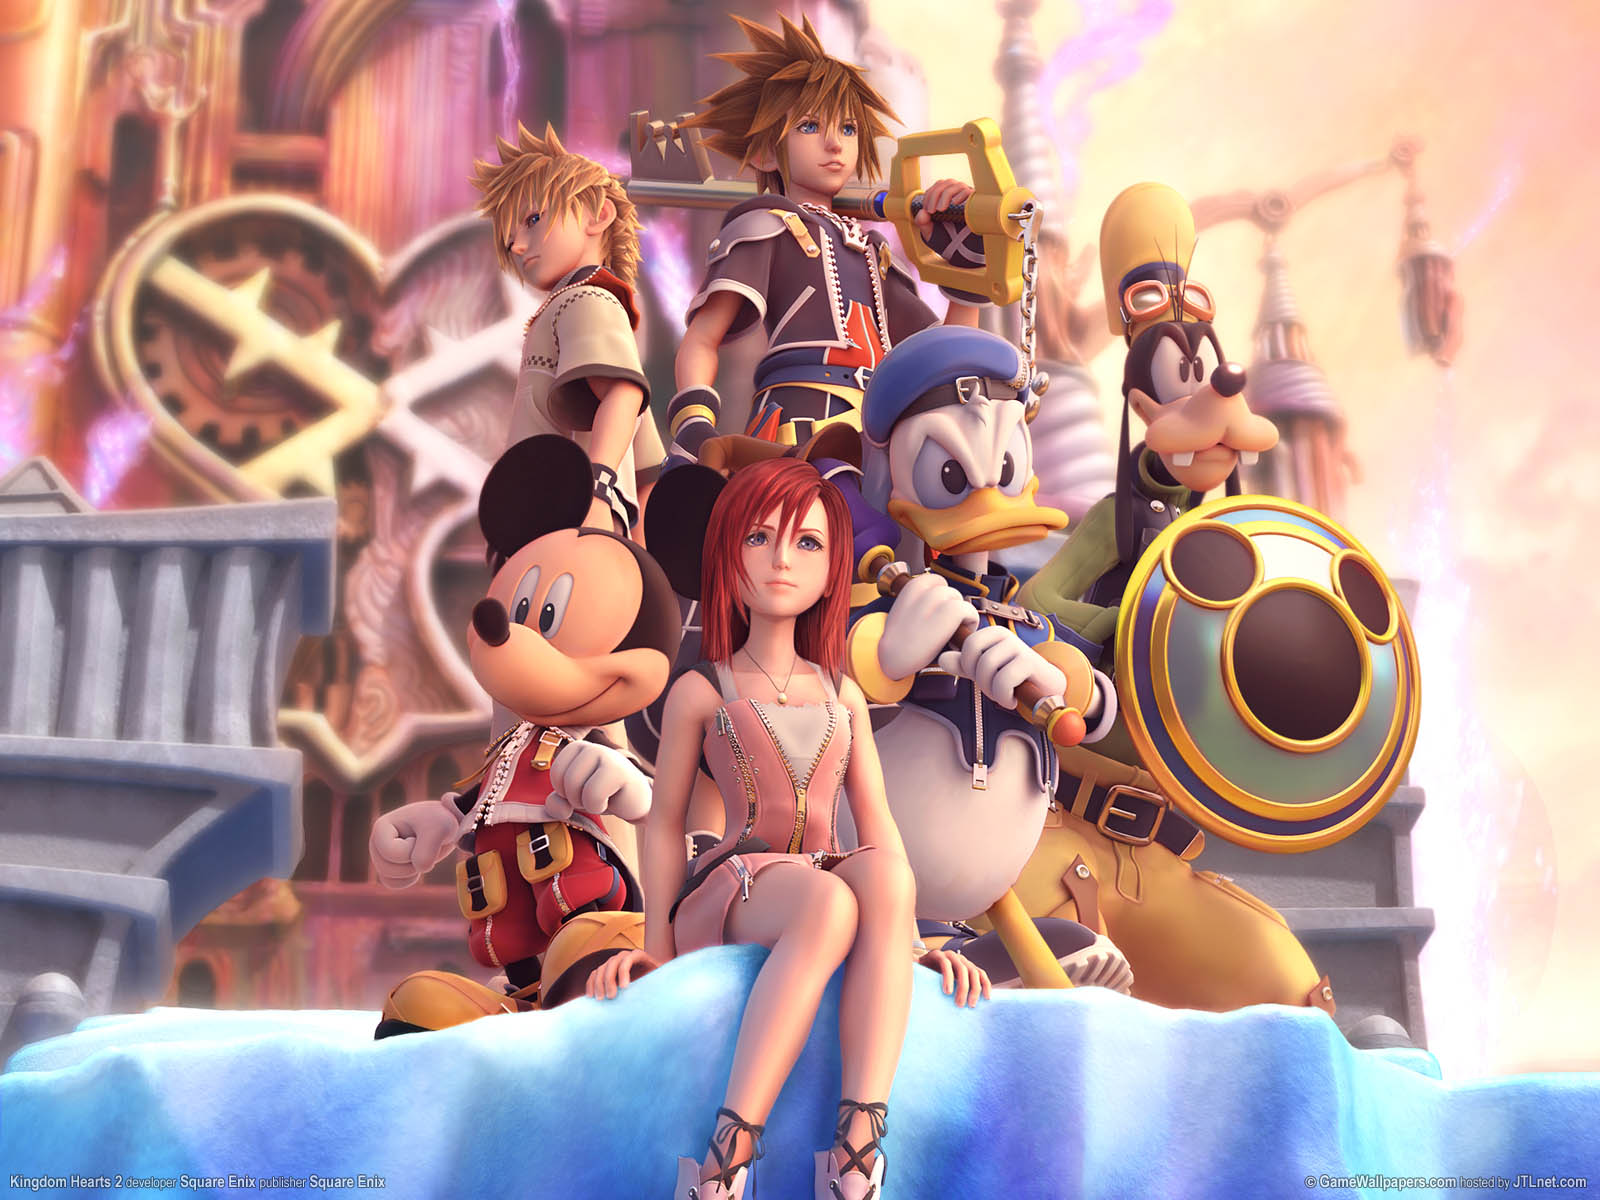 http://3.bp.blogspot.com/_5oTFLmY8GCU/TLM4Z3s7uMI/AAAAAAAAACU/Ms3KajYb3iE/s1600/kingdom_hearts_2_wallpaper.jpg